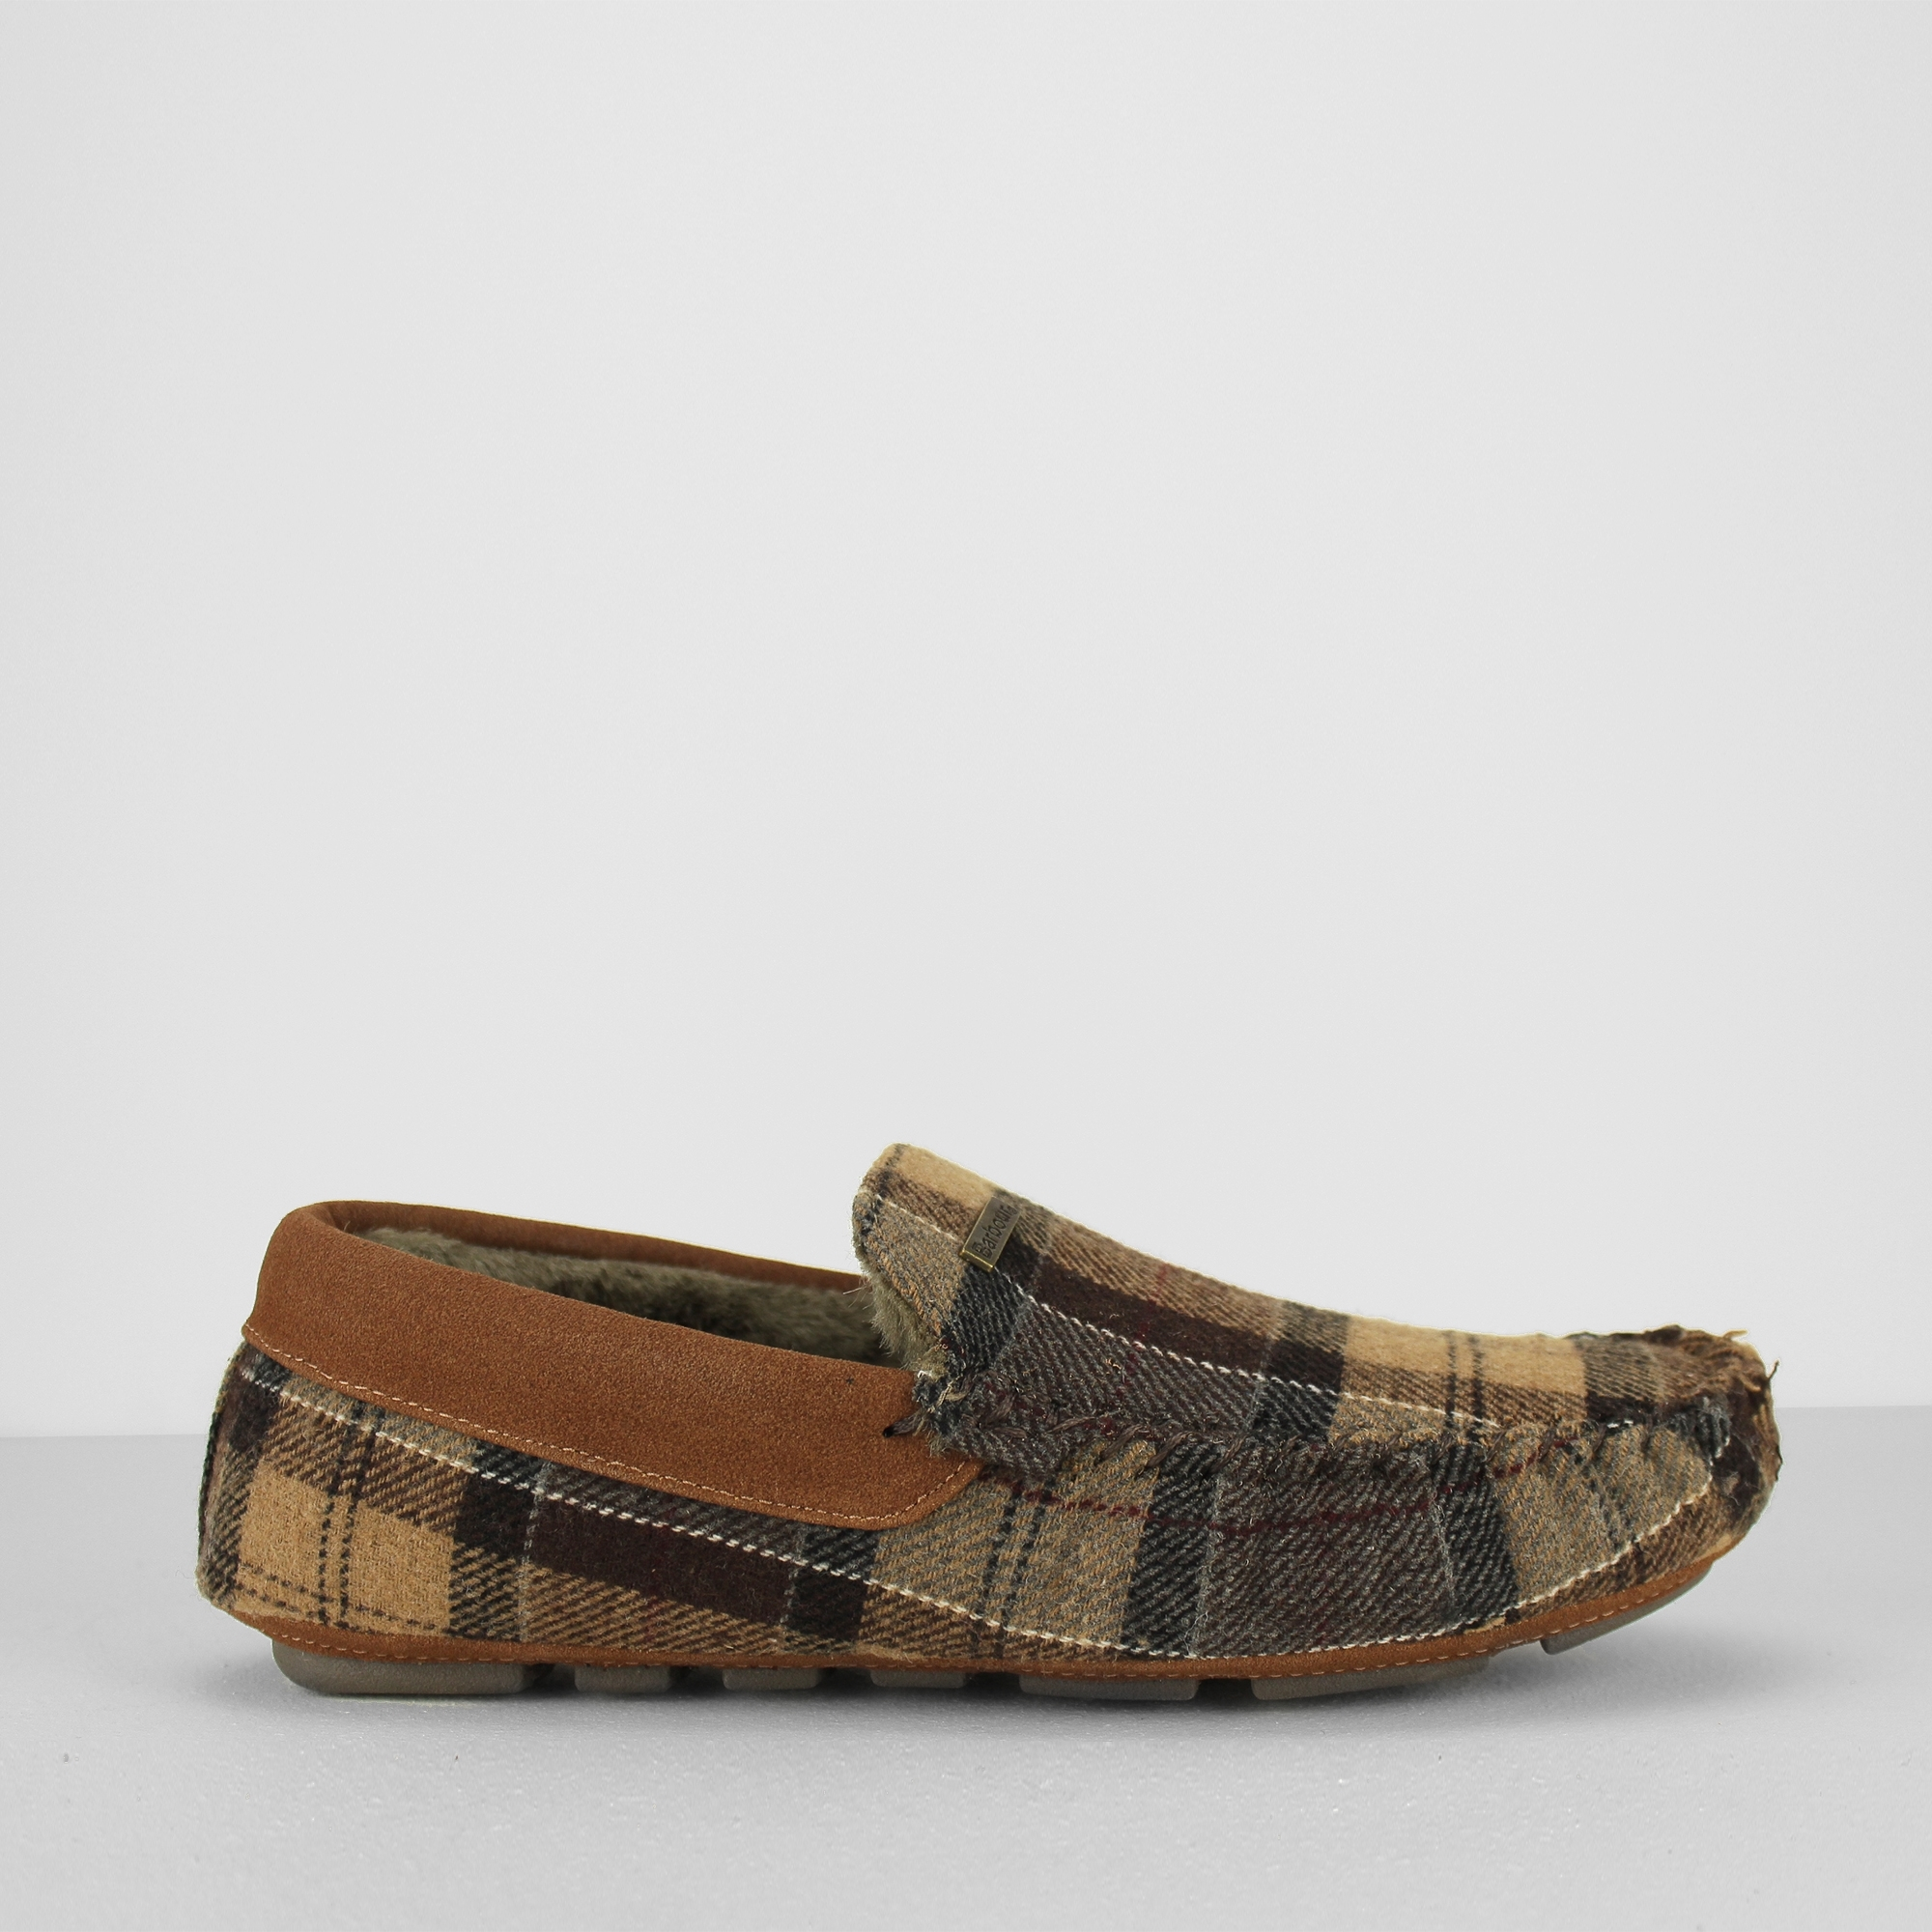 89f4fadf19e4 Barbour MONTY THINSULATE Mens Moccasin Slippers Camel Tartan